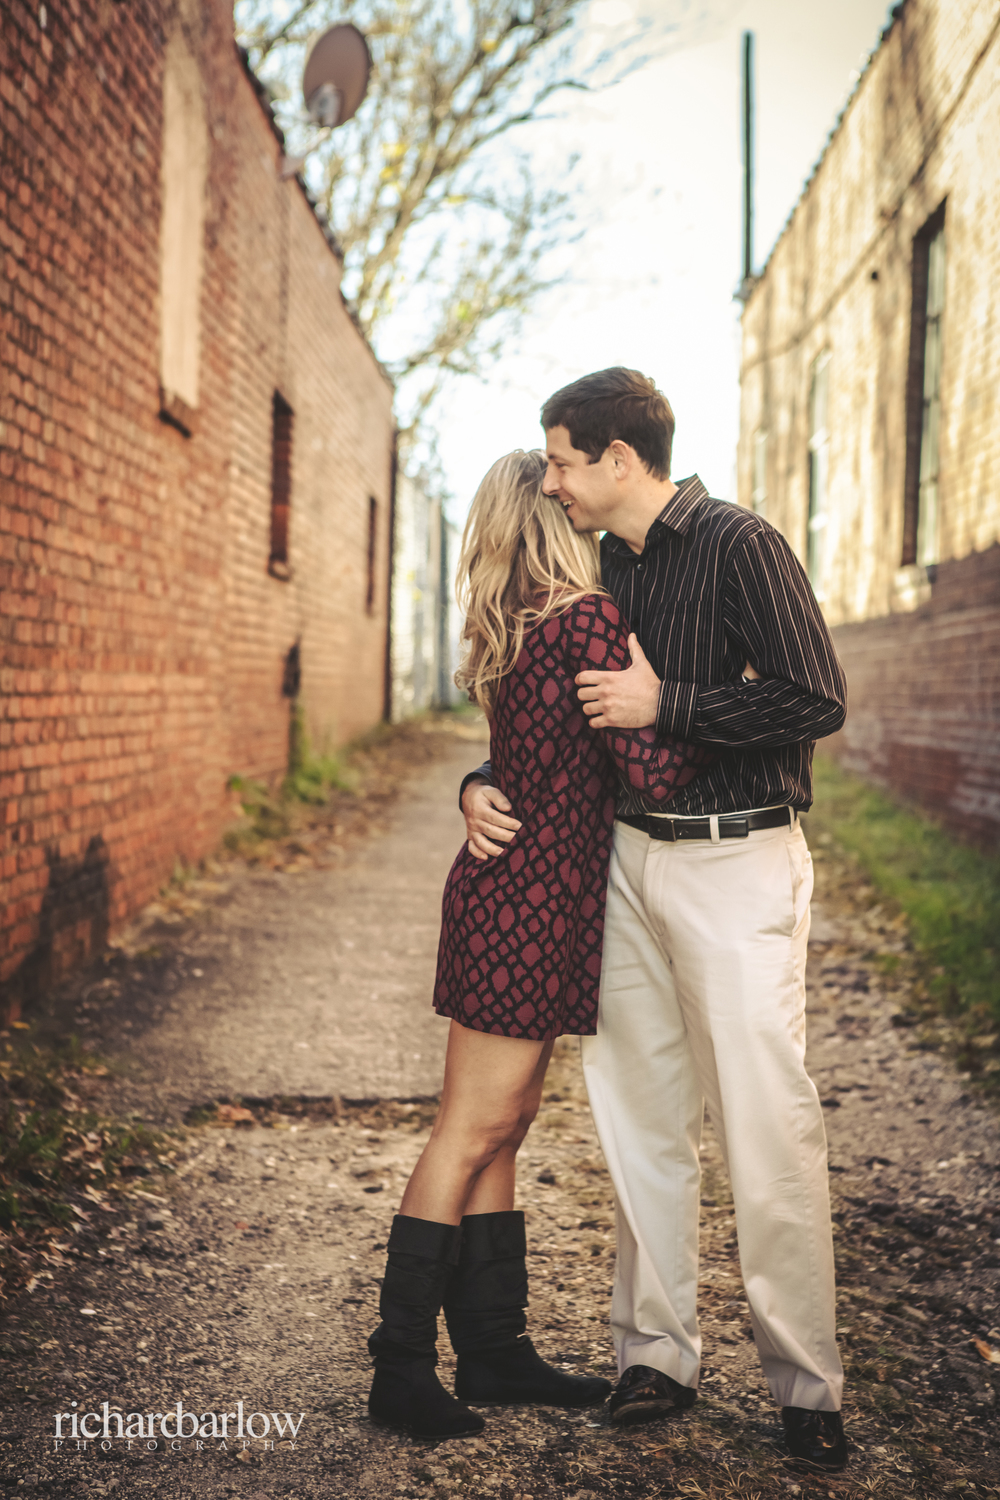 richard barlow photography - Garrett and Heather Engagement Session Raleigh-5.jpg